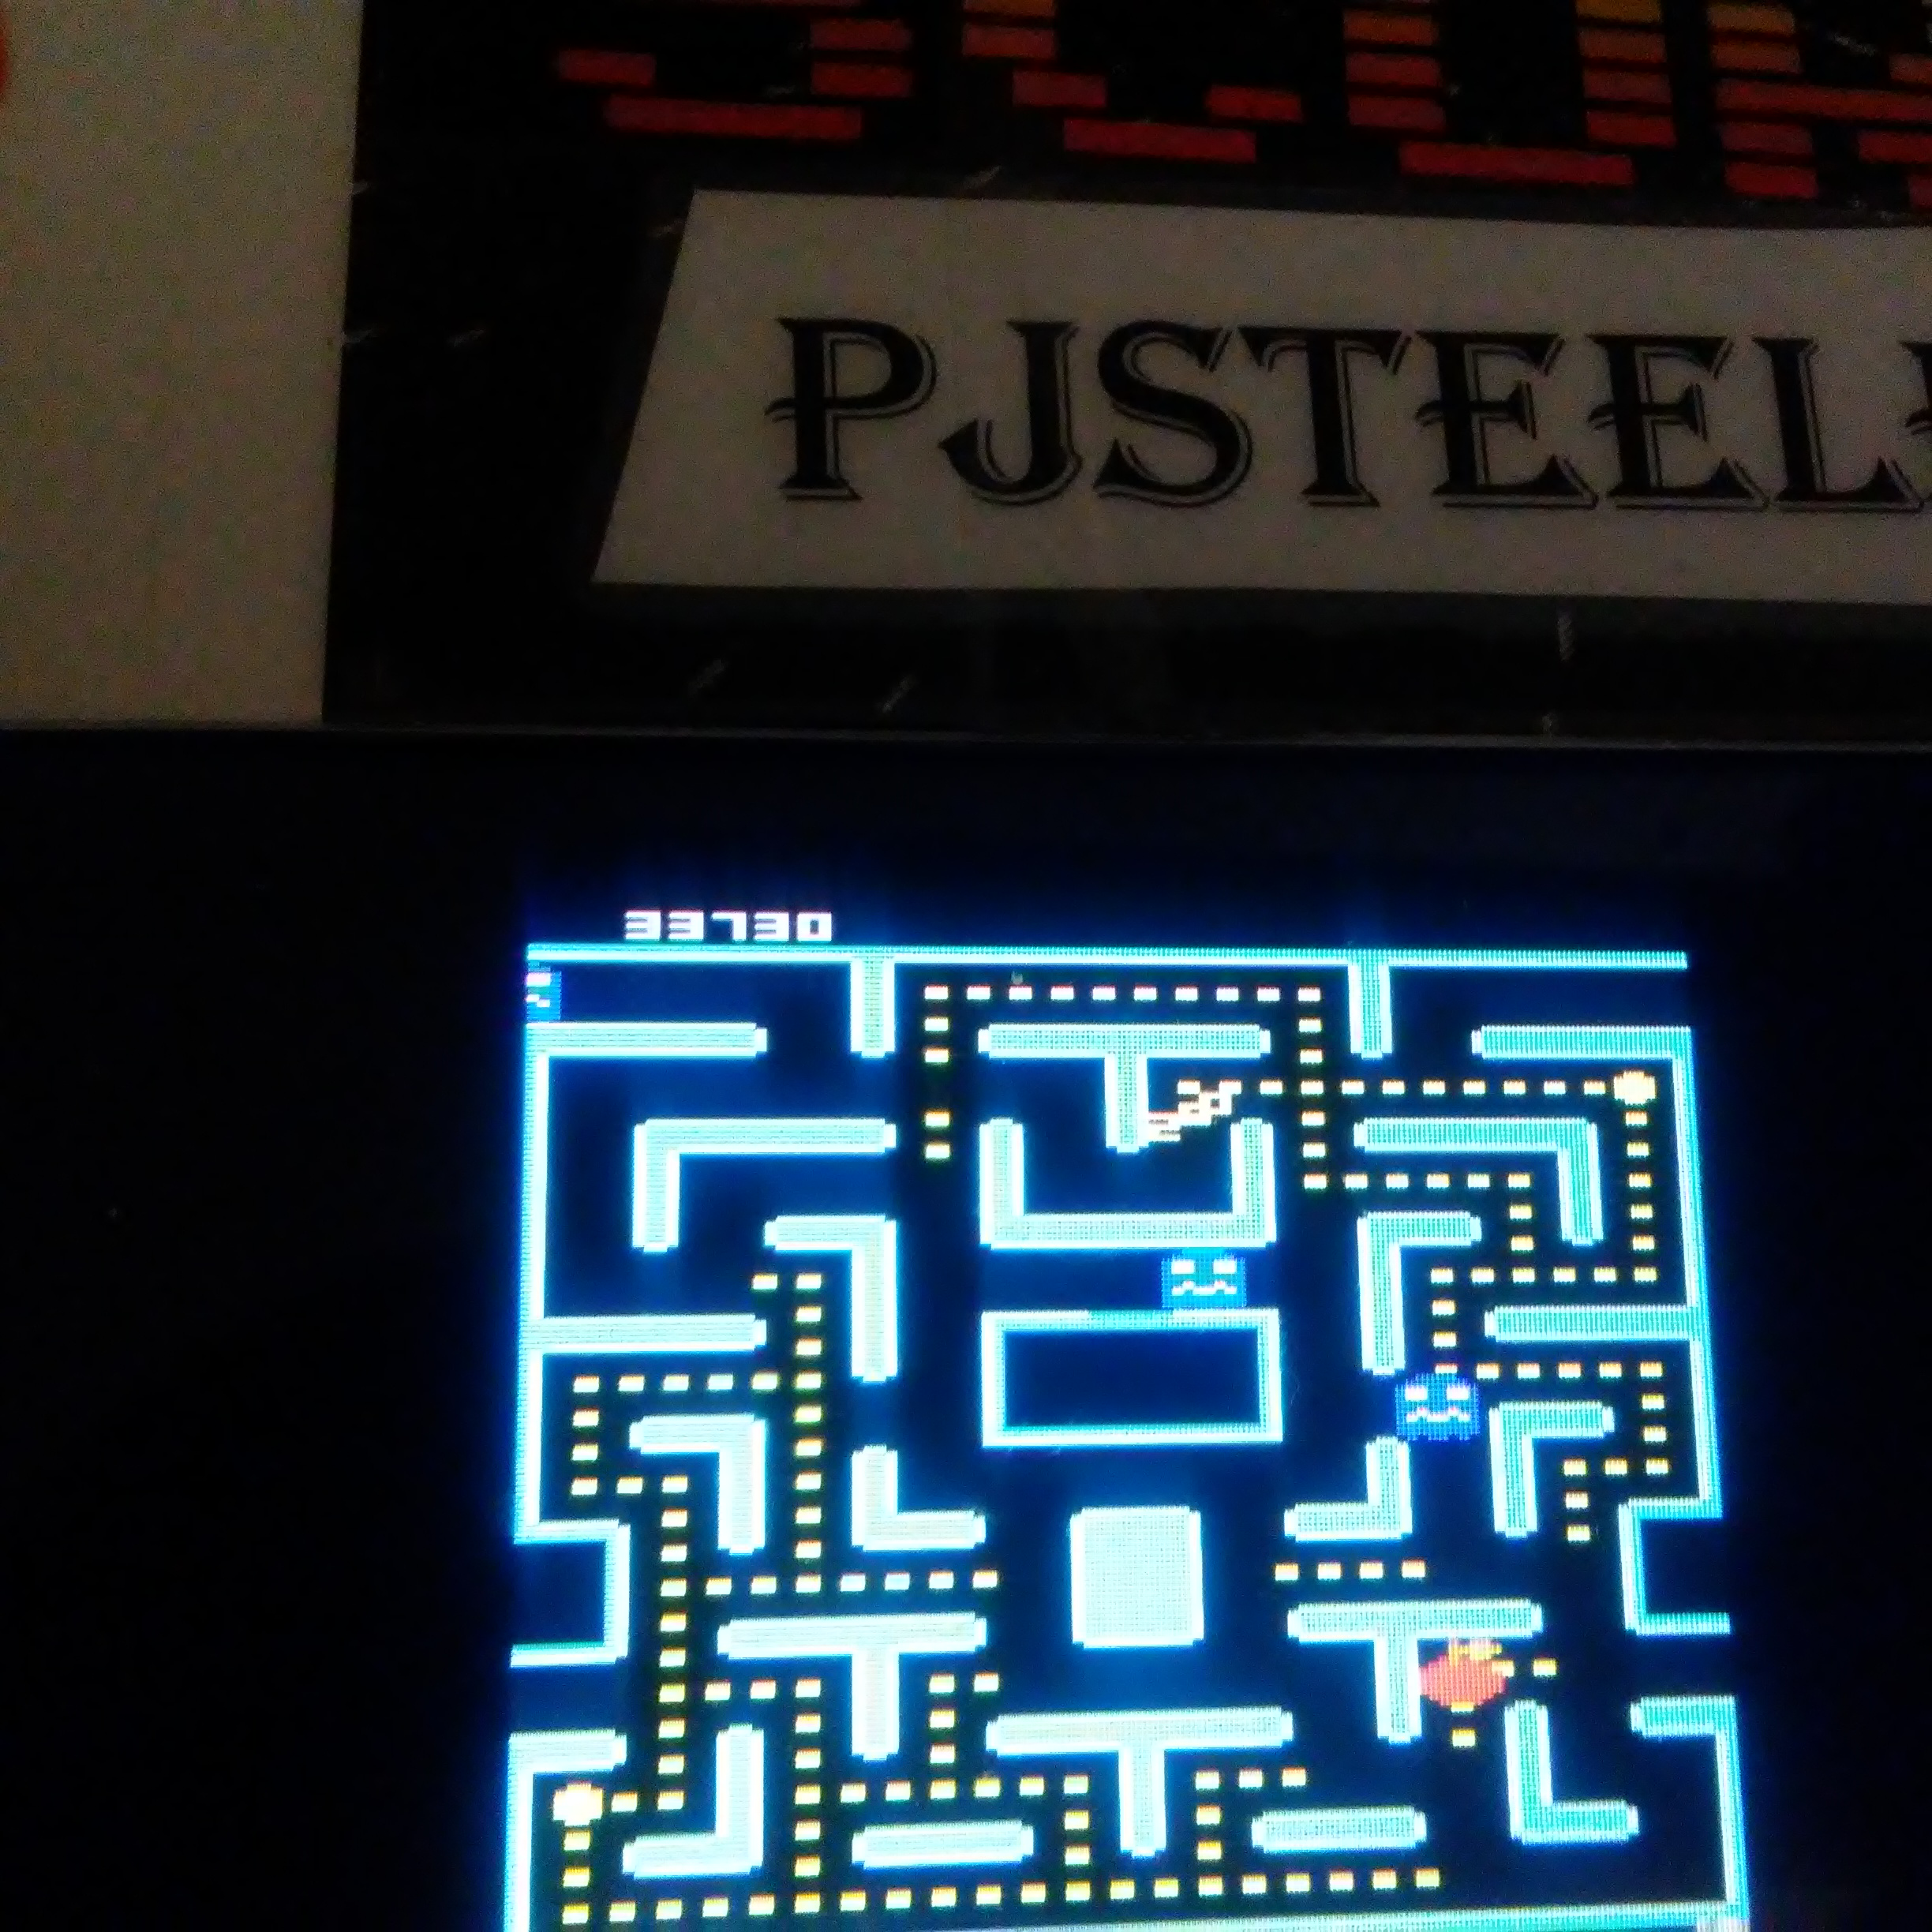 Pjsteele: Ms. Pac-Man: Orange Start (Atari 7800 Emulated) 33,730 points on 2018-06-18 18:00:26